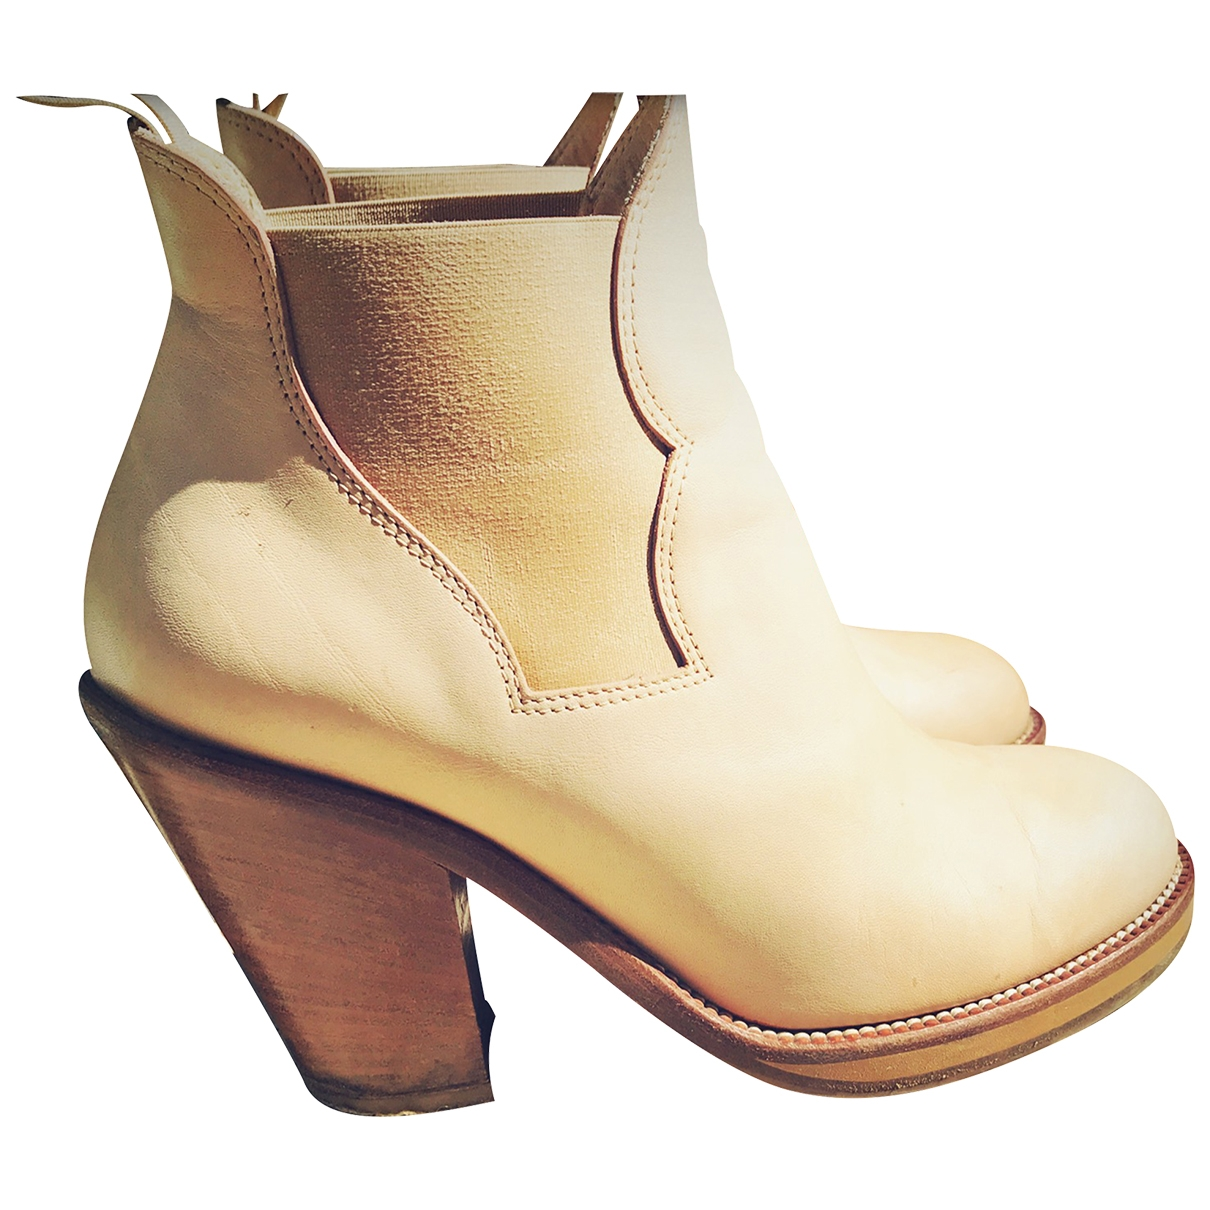 Acne Studios Pistol Beige Leather Ankle boots for Women 38 EU